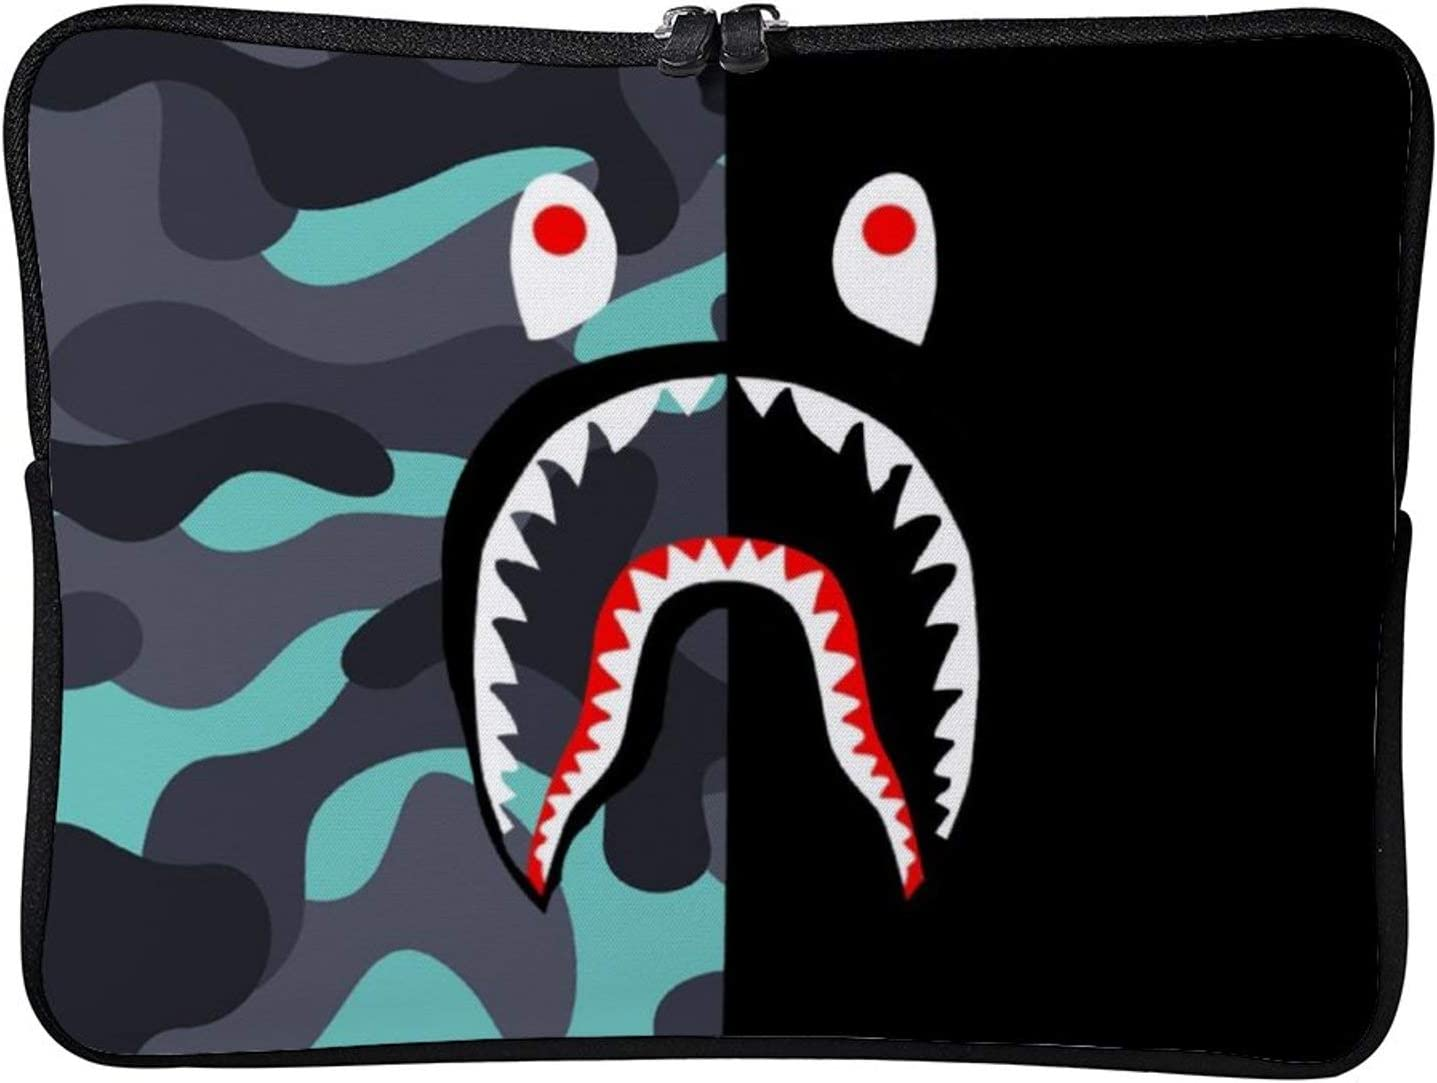 AmaUncle Sleeve Tablet Protective Bag Ba-pe Blood Shark (Model 8) Custom Tablet Sleeve Bag Case 11.6 inch/12 inch